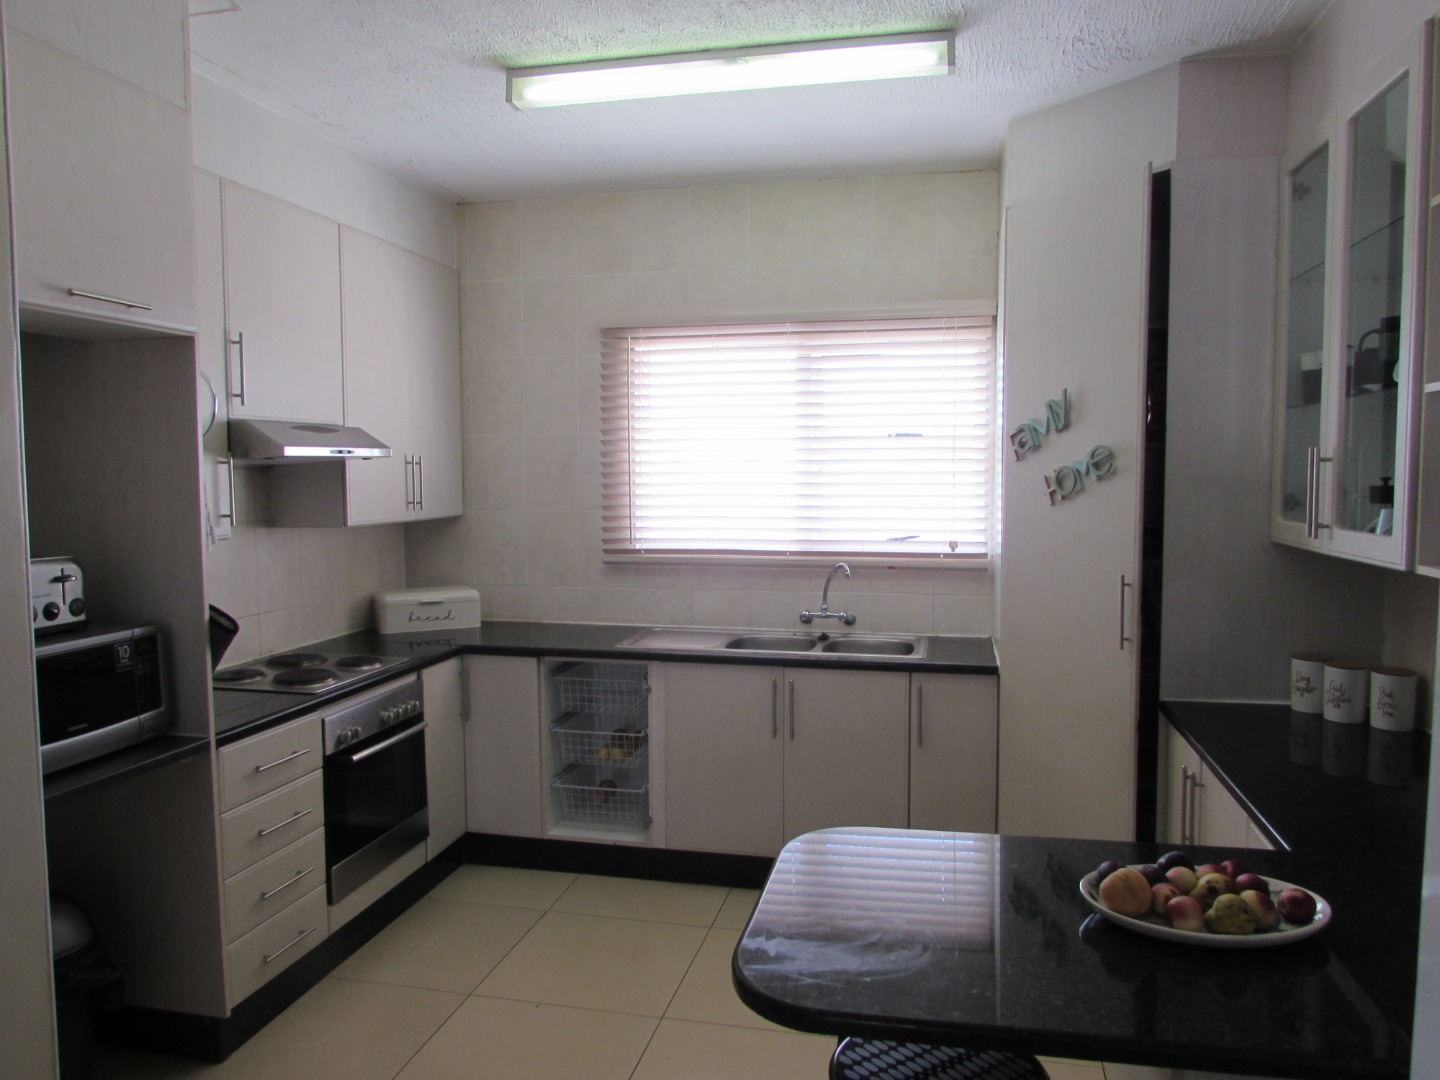 3 Bedroom Townhouse For Sale in Phakalane